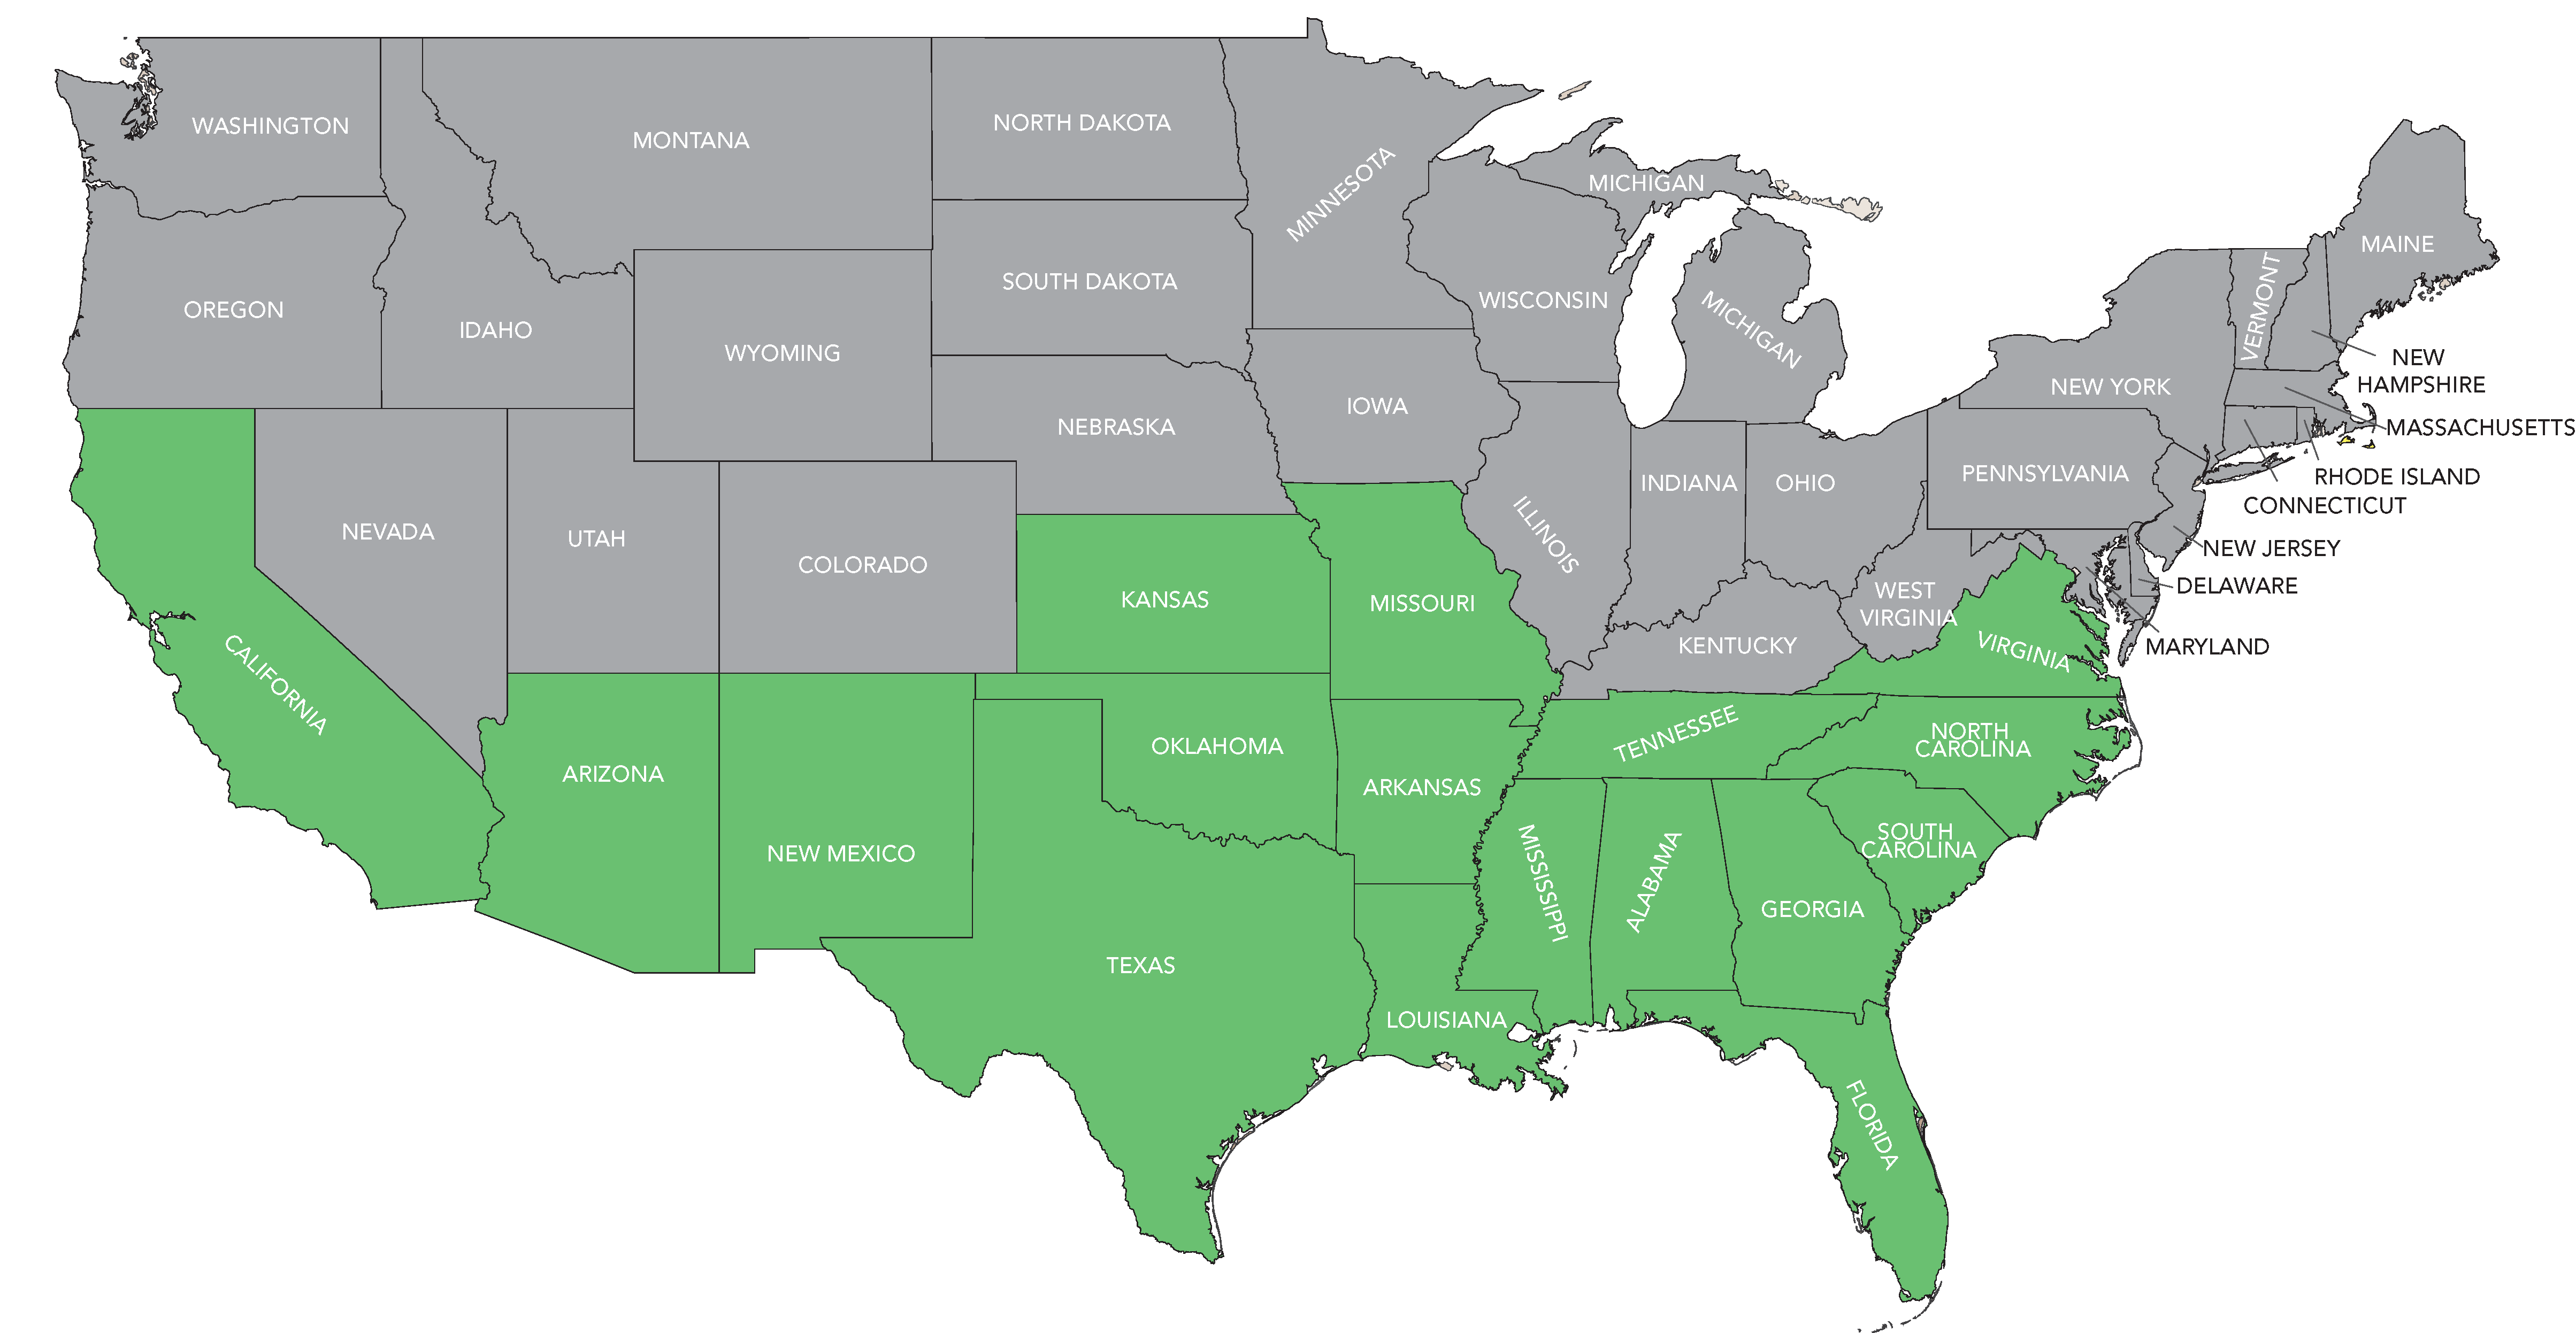 Map showing states in U.S. where cotton is grown